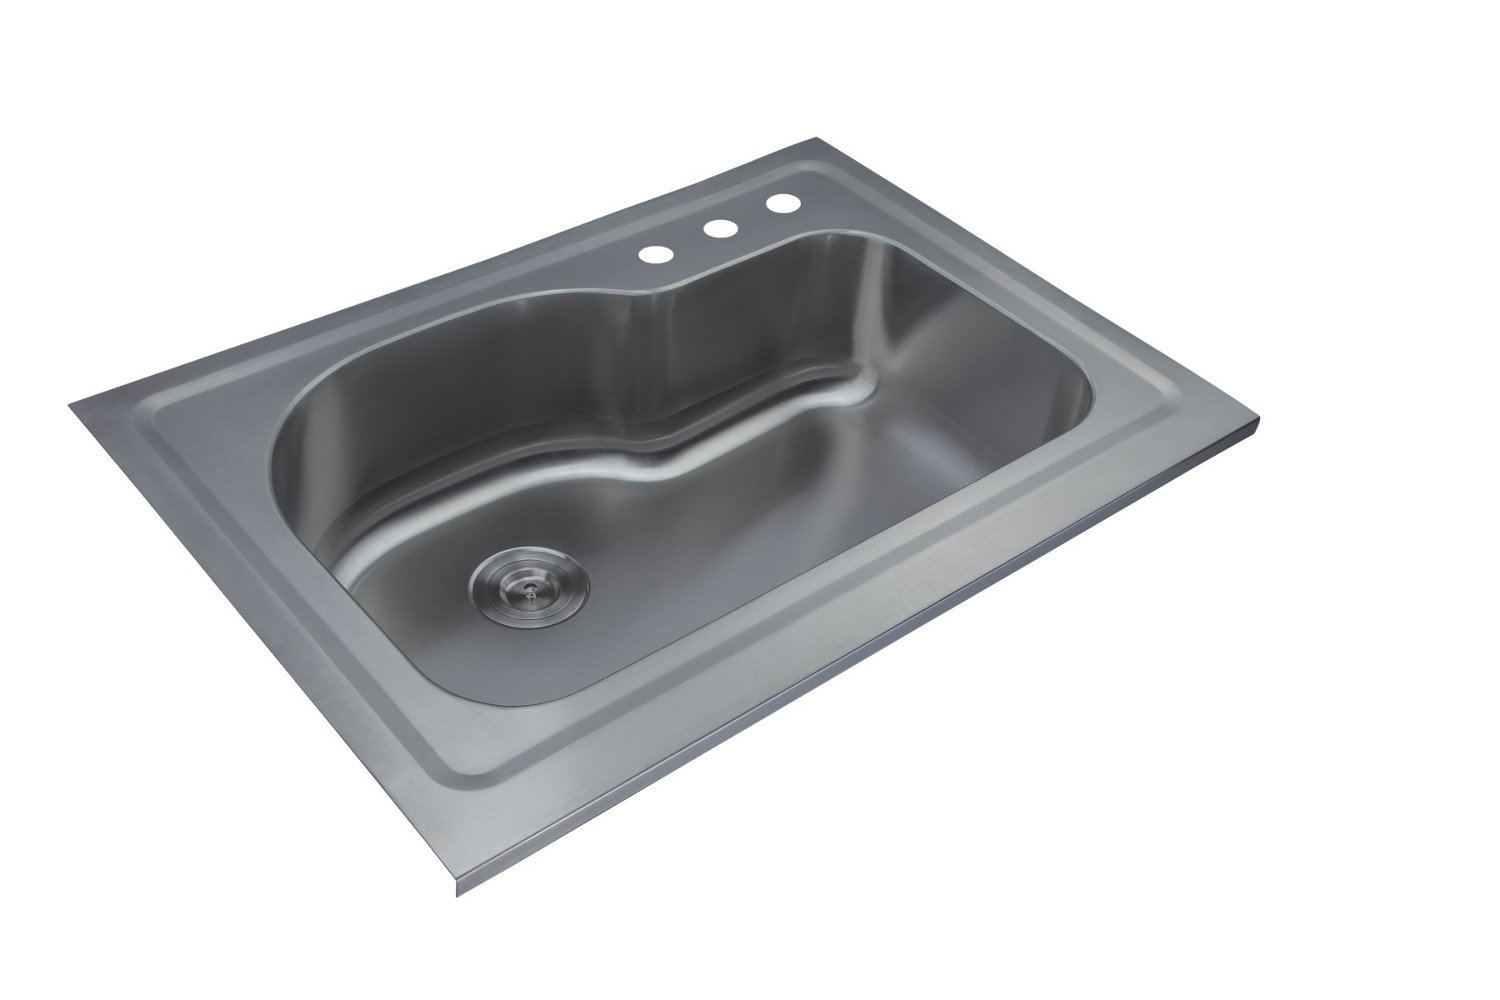 Single Bowl Slide-In Topmount Economy Stainless Steel Kitchen Sink